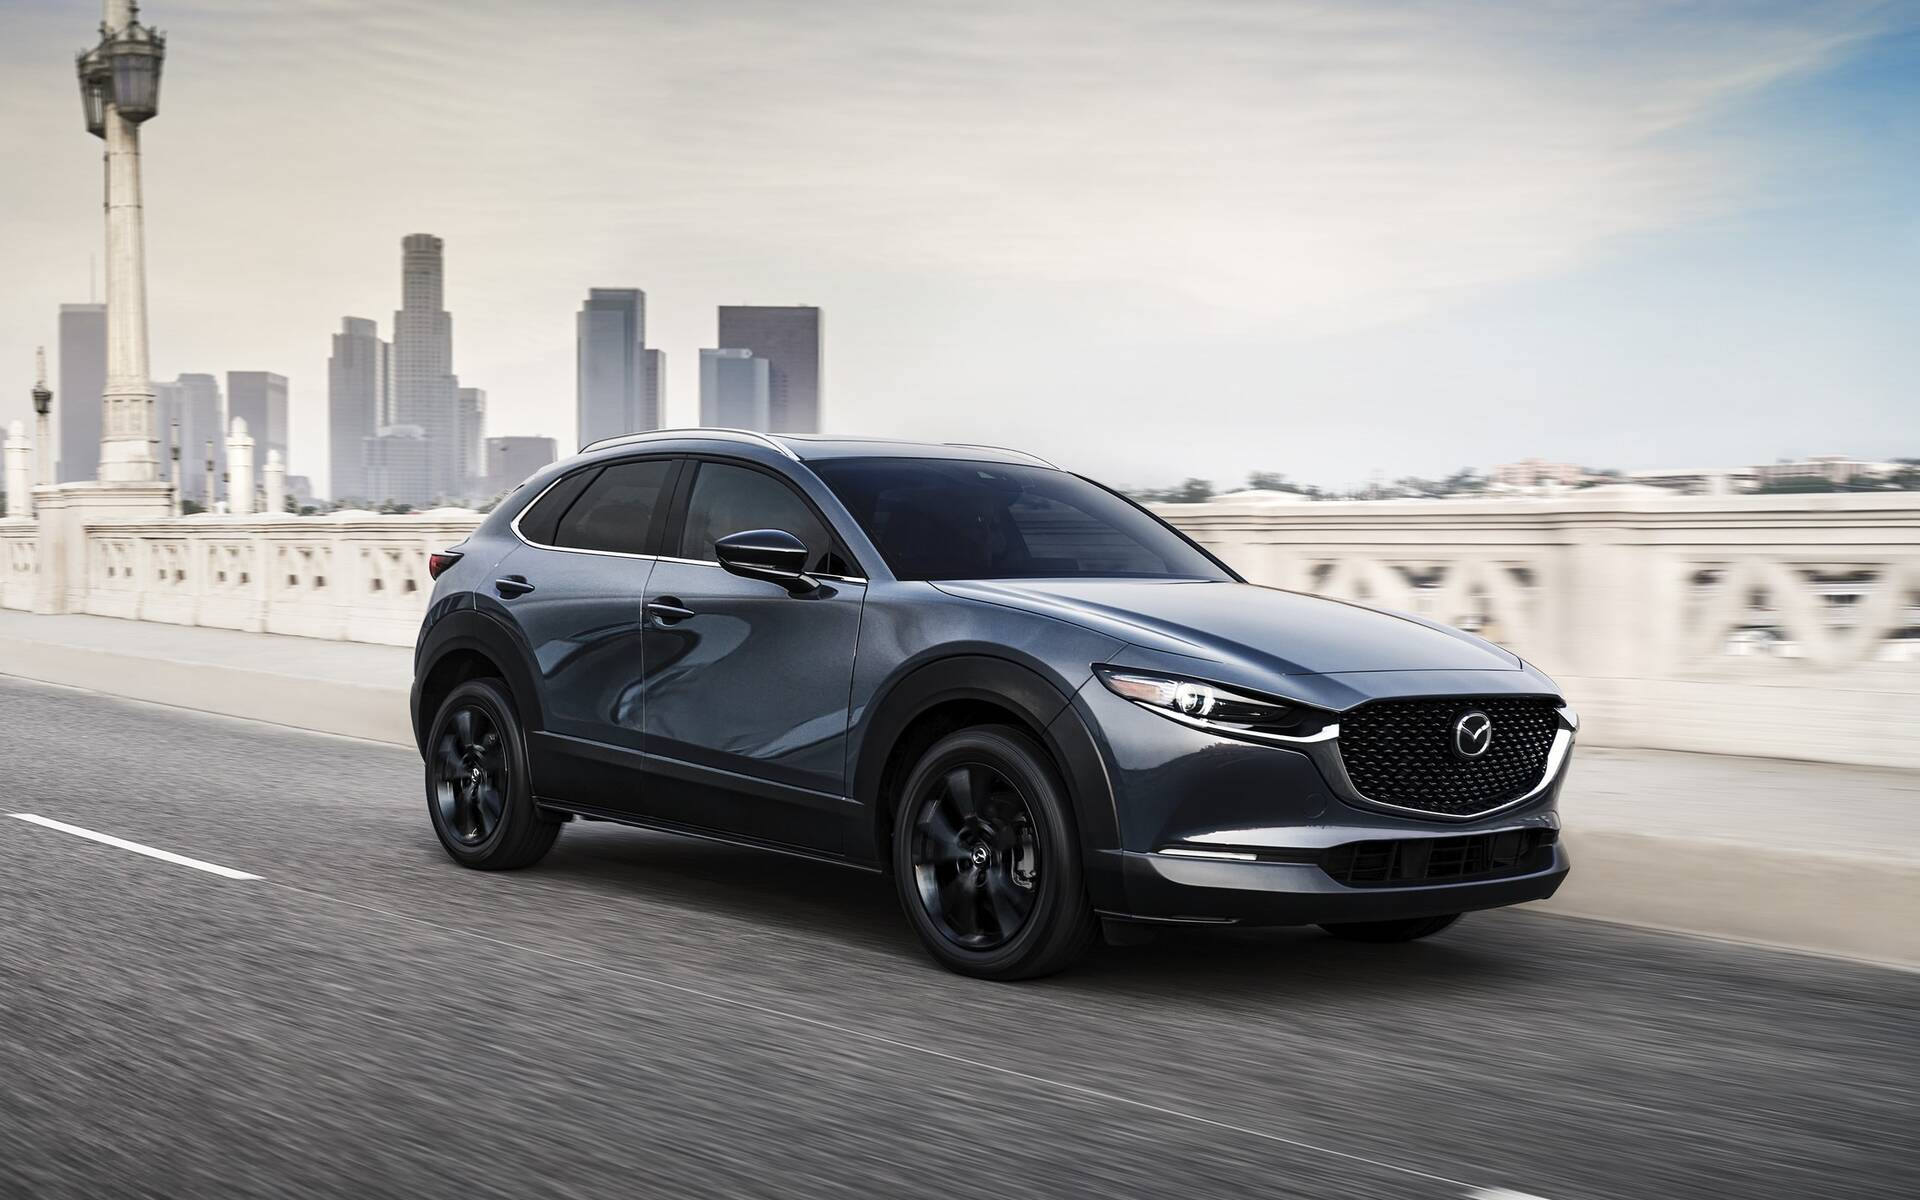 2021 Mazda CX-30 Turbo first drive review: Hostile torque-over